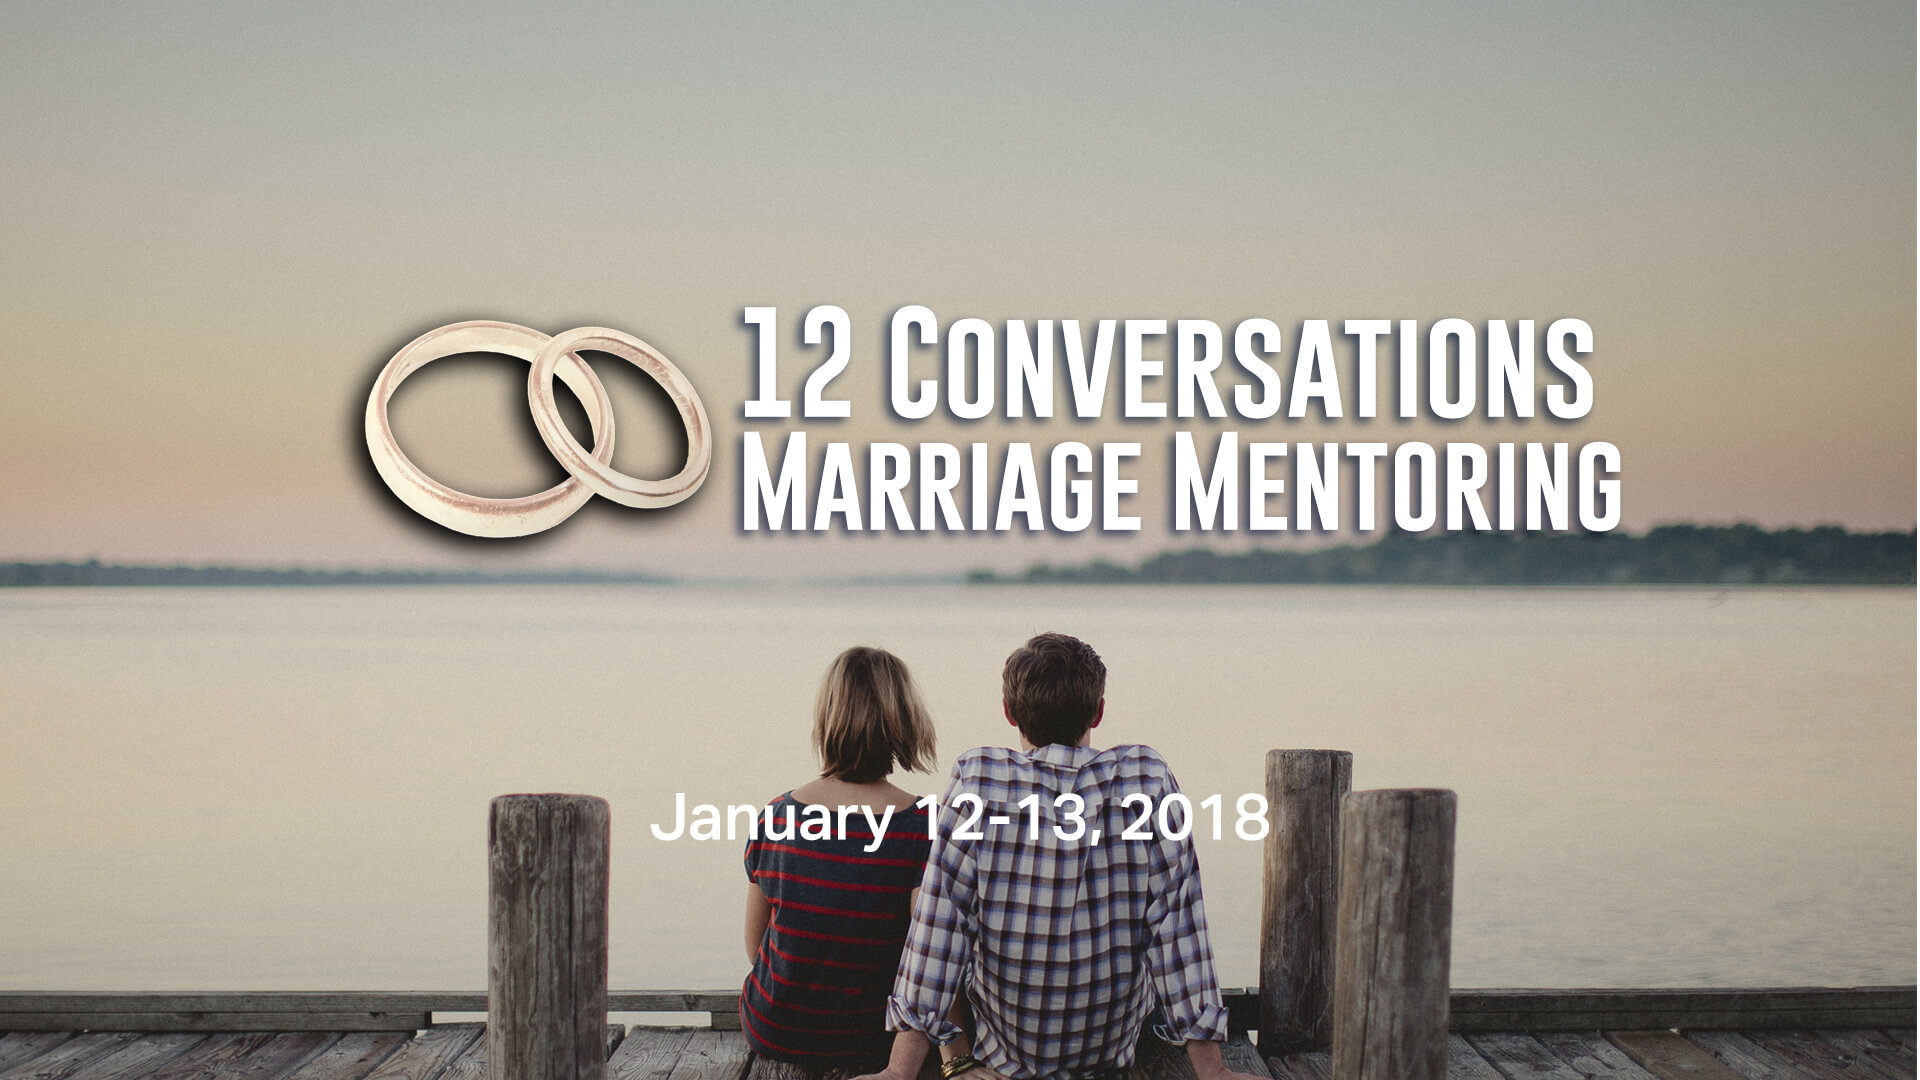 dyanamic and marriage mentor web